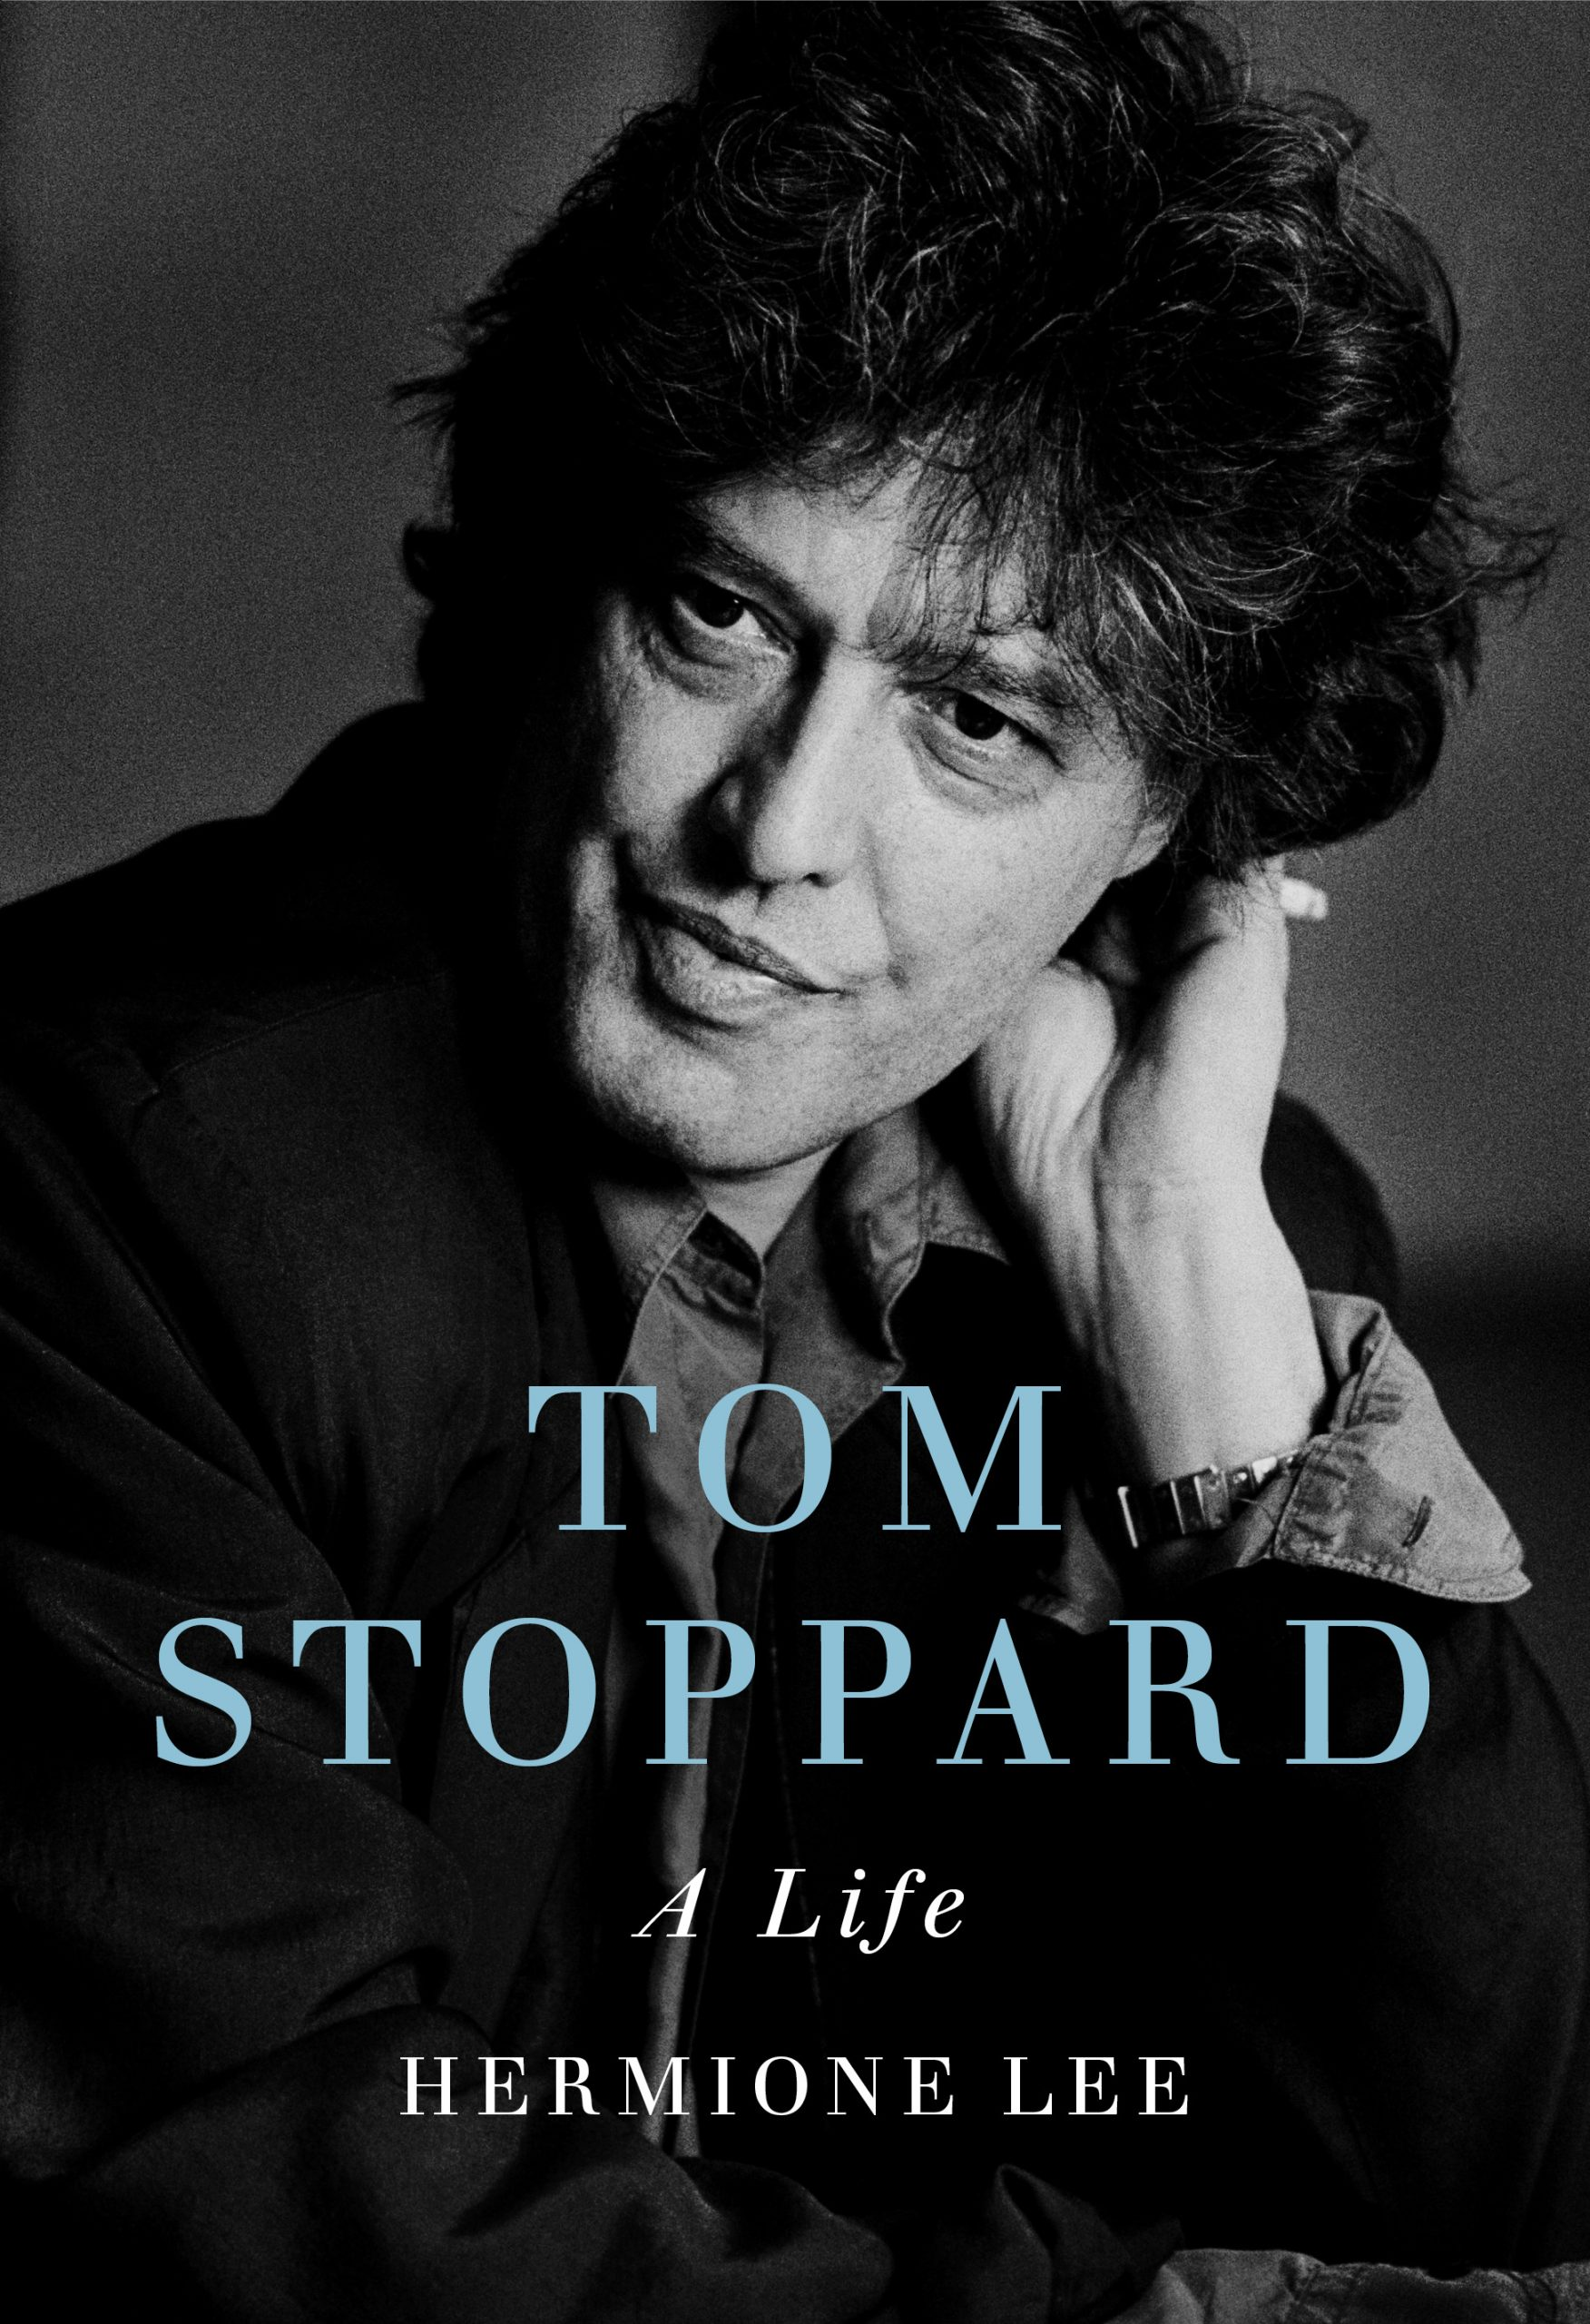 Tom Stoppard: A Life book cover with Tom Stoppard picture. Written by Hermione Lee